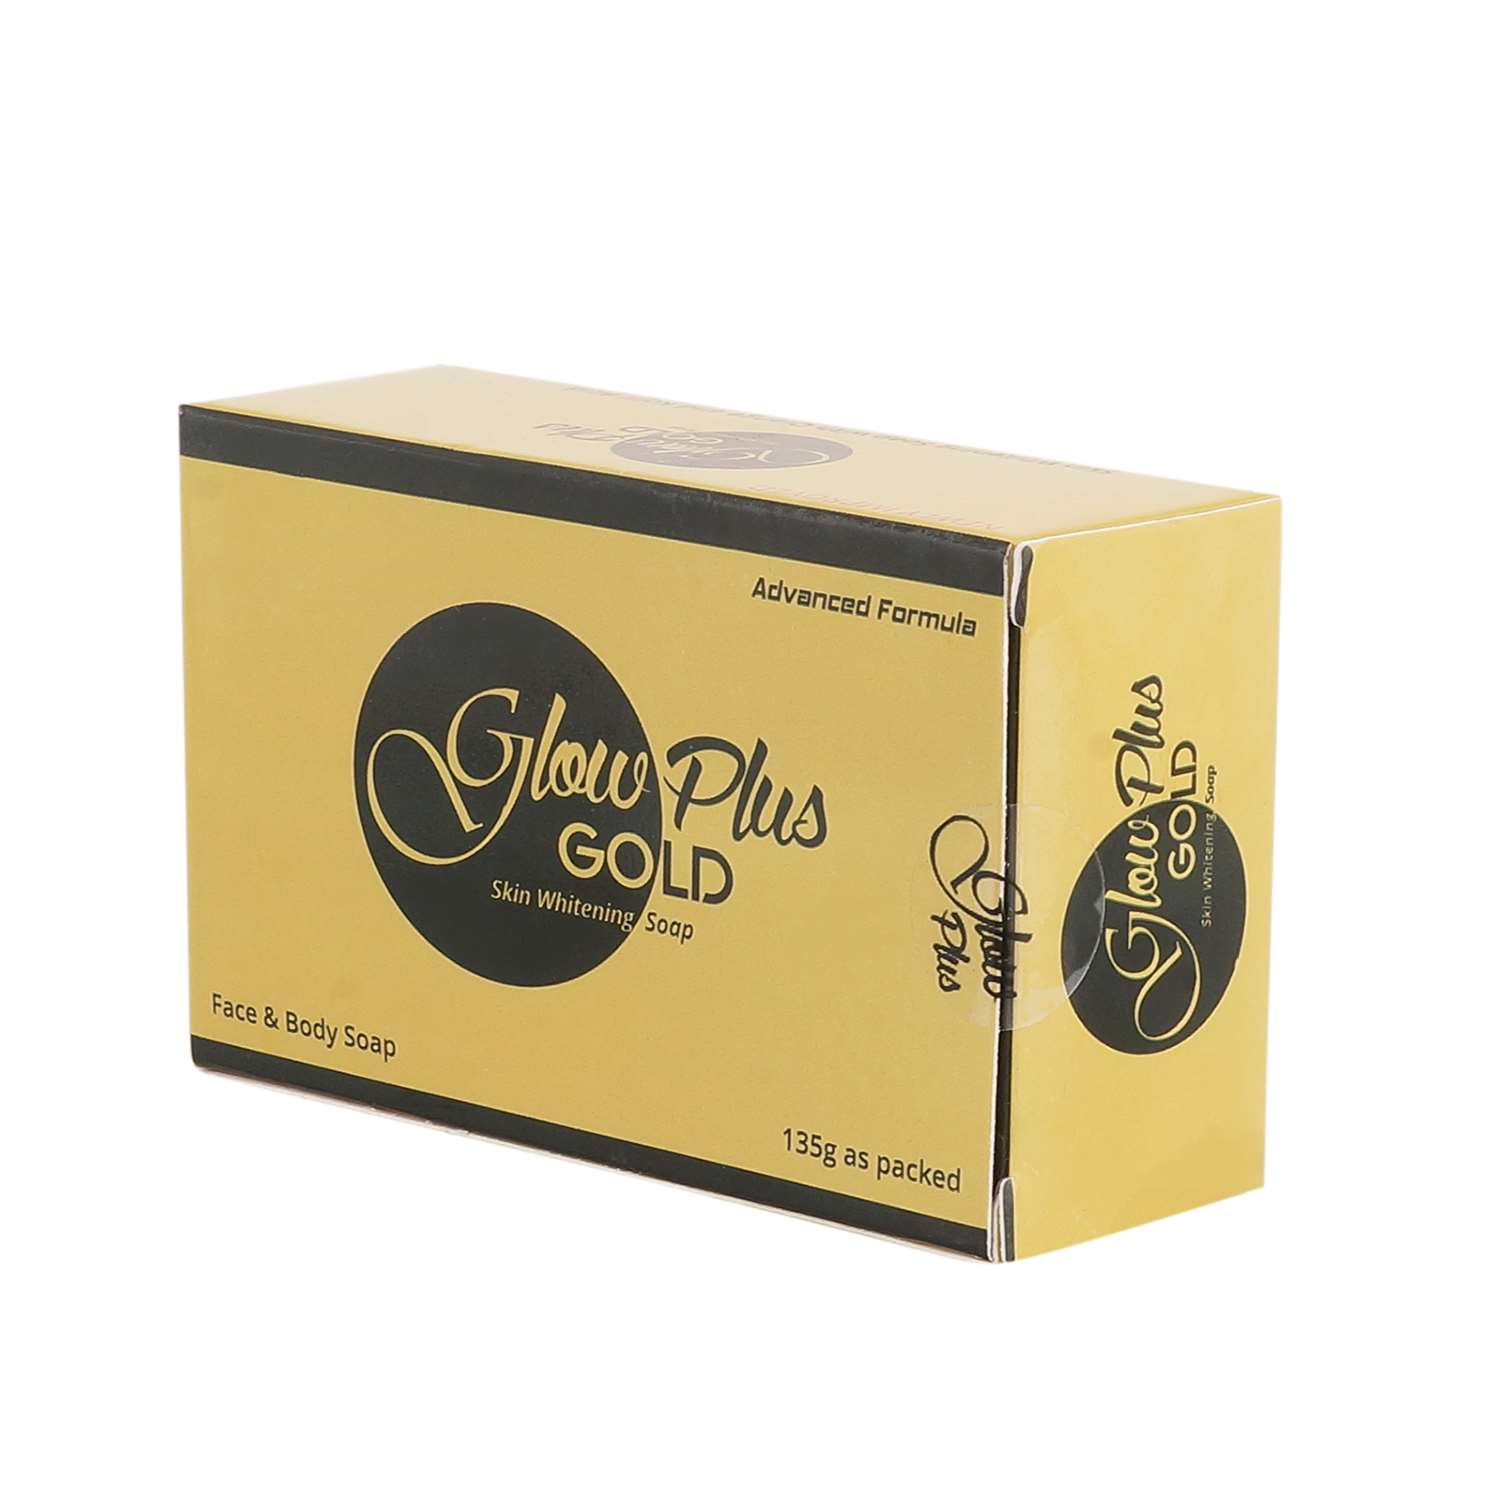 Glow Plus Gold Face and Body Whitening Soap | Healthcare Beauty